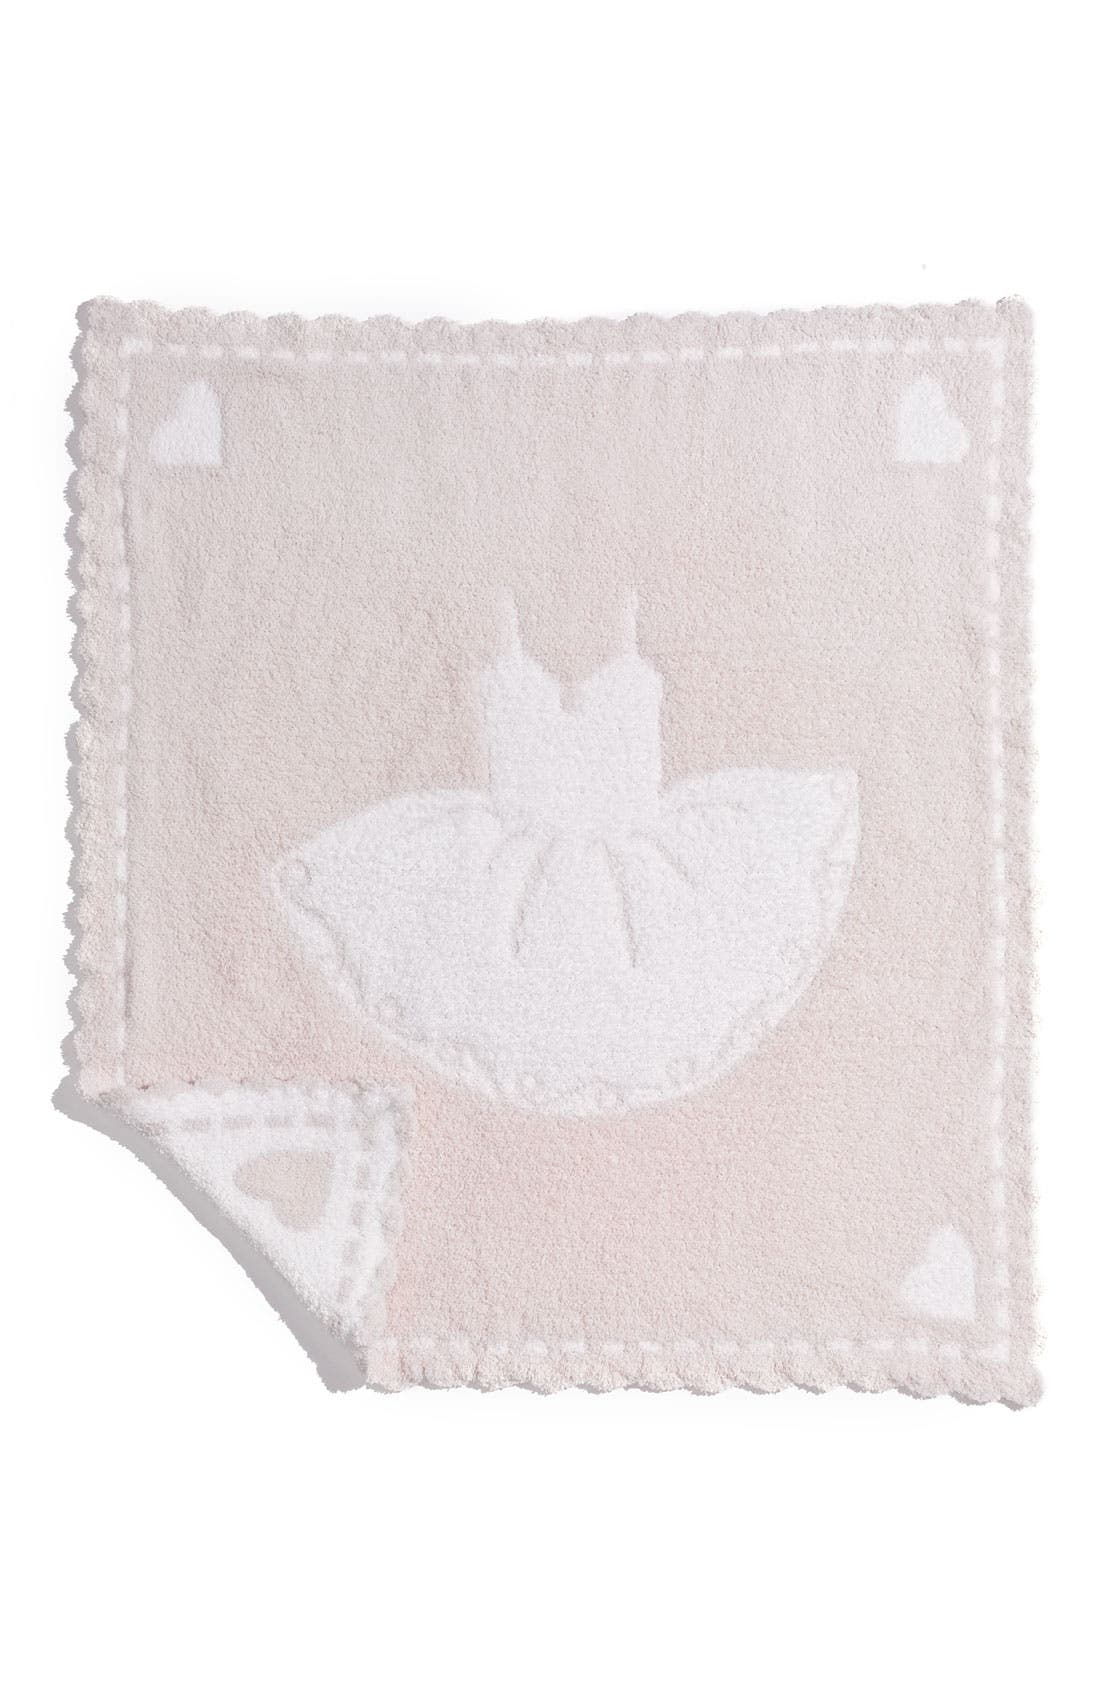 Receiving Blanket,                         Main,                         color, Pink/ White